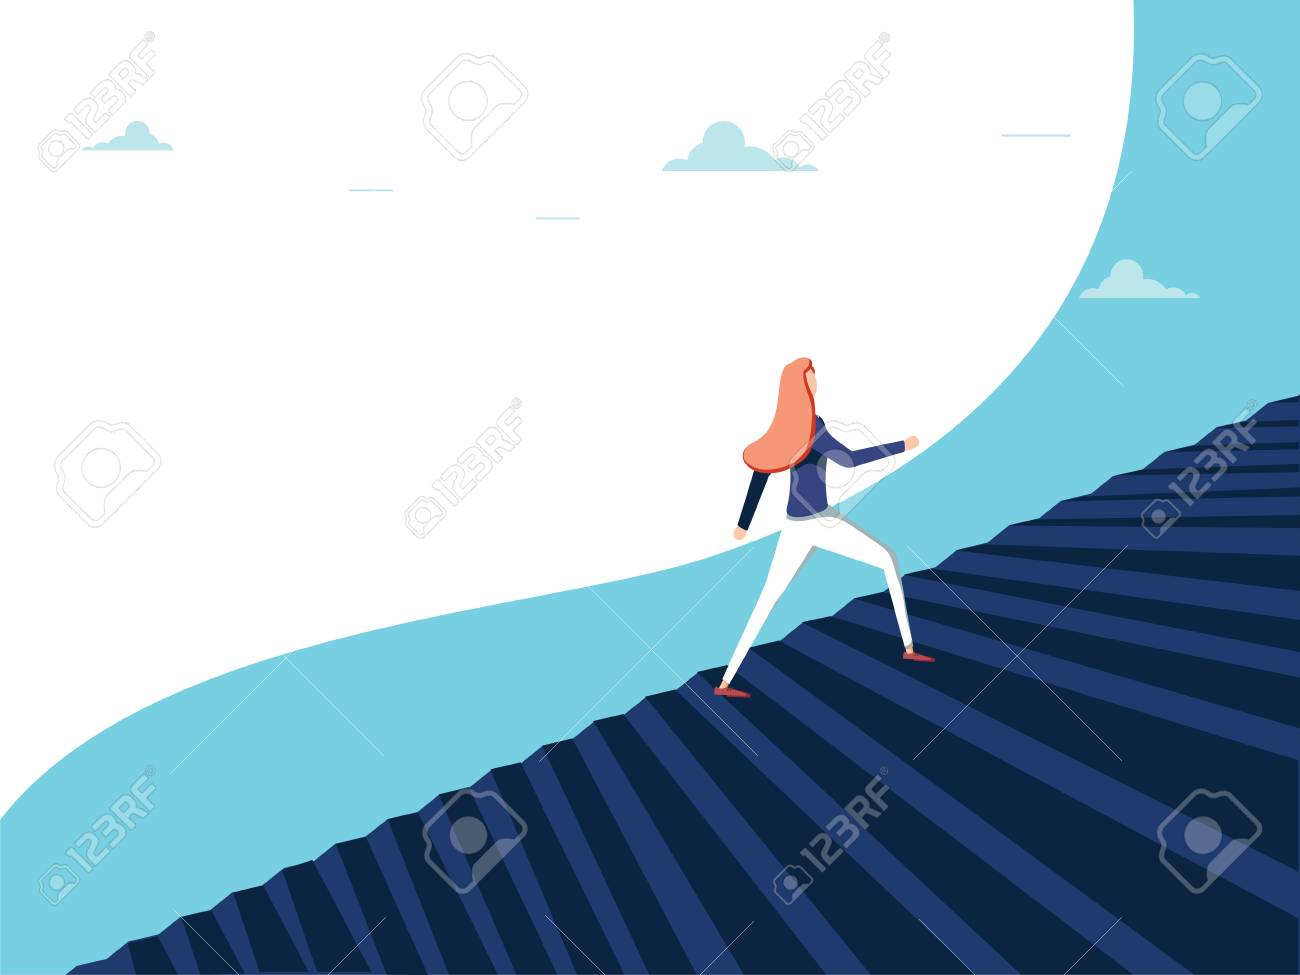 Buisnesswoman climbing career steps vector concept. Symbol of ambition, motivation, success in career promotion. Eps10 vector illustration. Business opportunity concept for feminism. Woman in business - 126360581